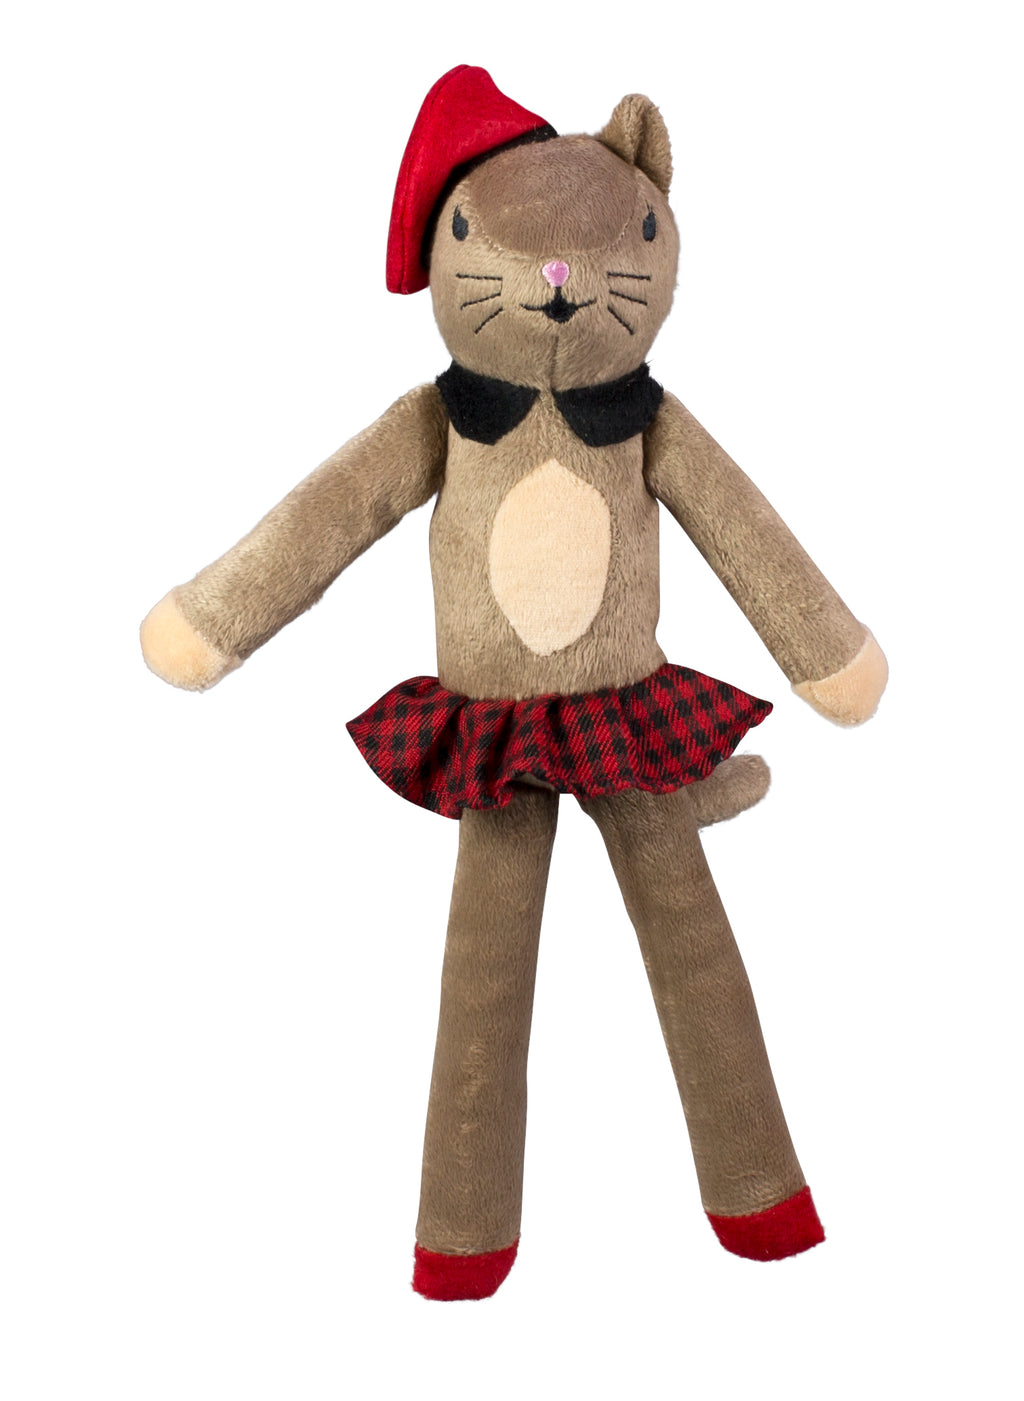 Mon Bebe Chloe Kitty B&G Martin Designer Soft Plush Vintage Parisian Dog Toy